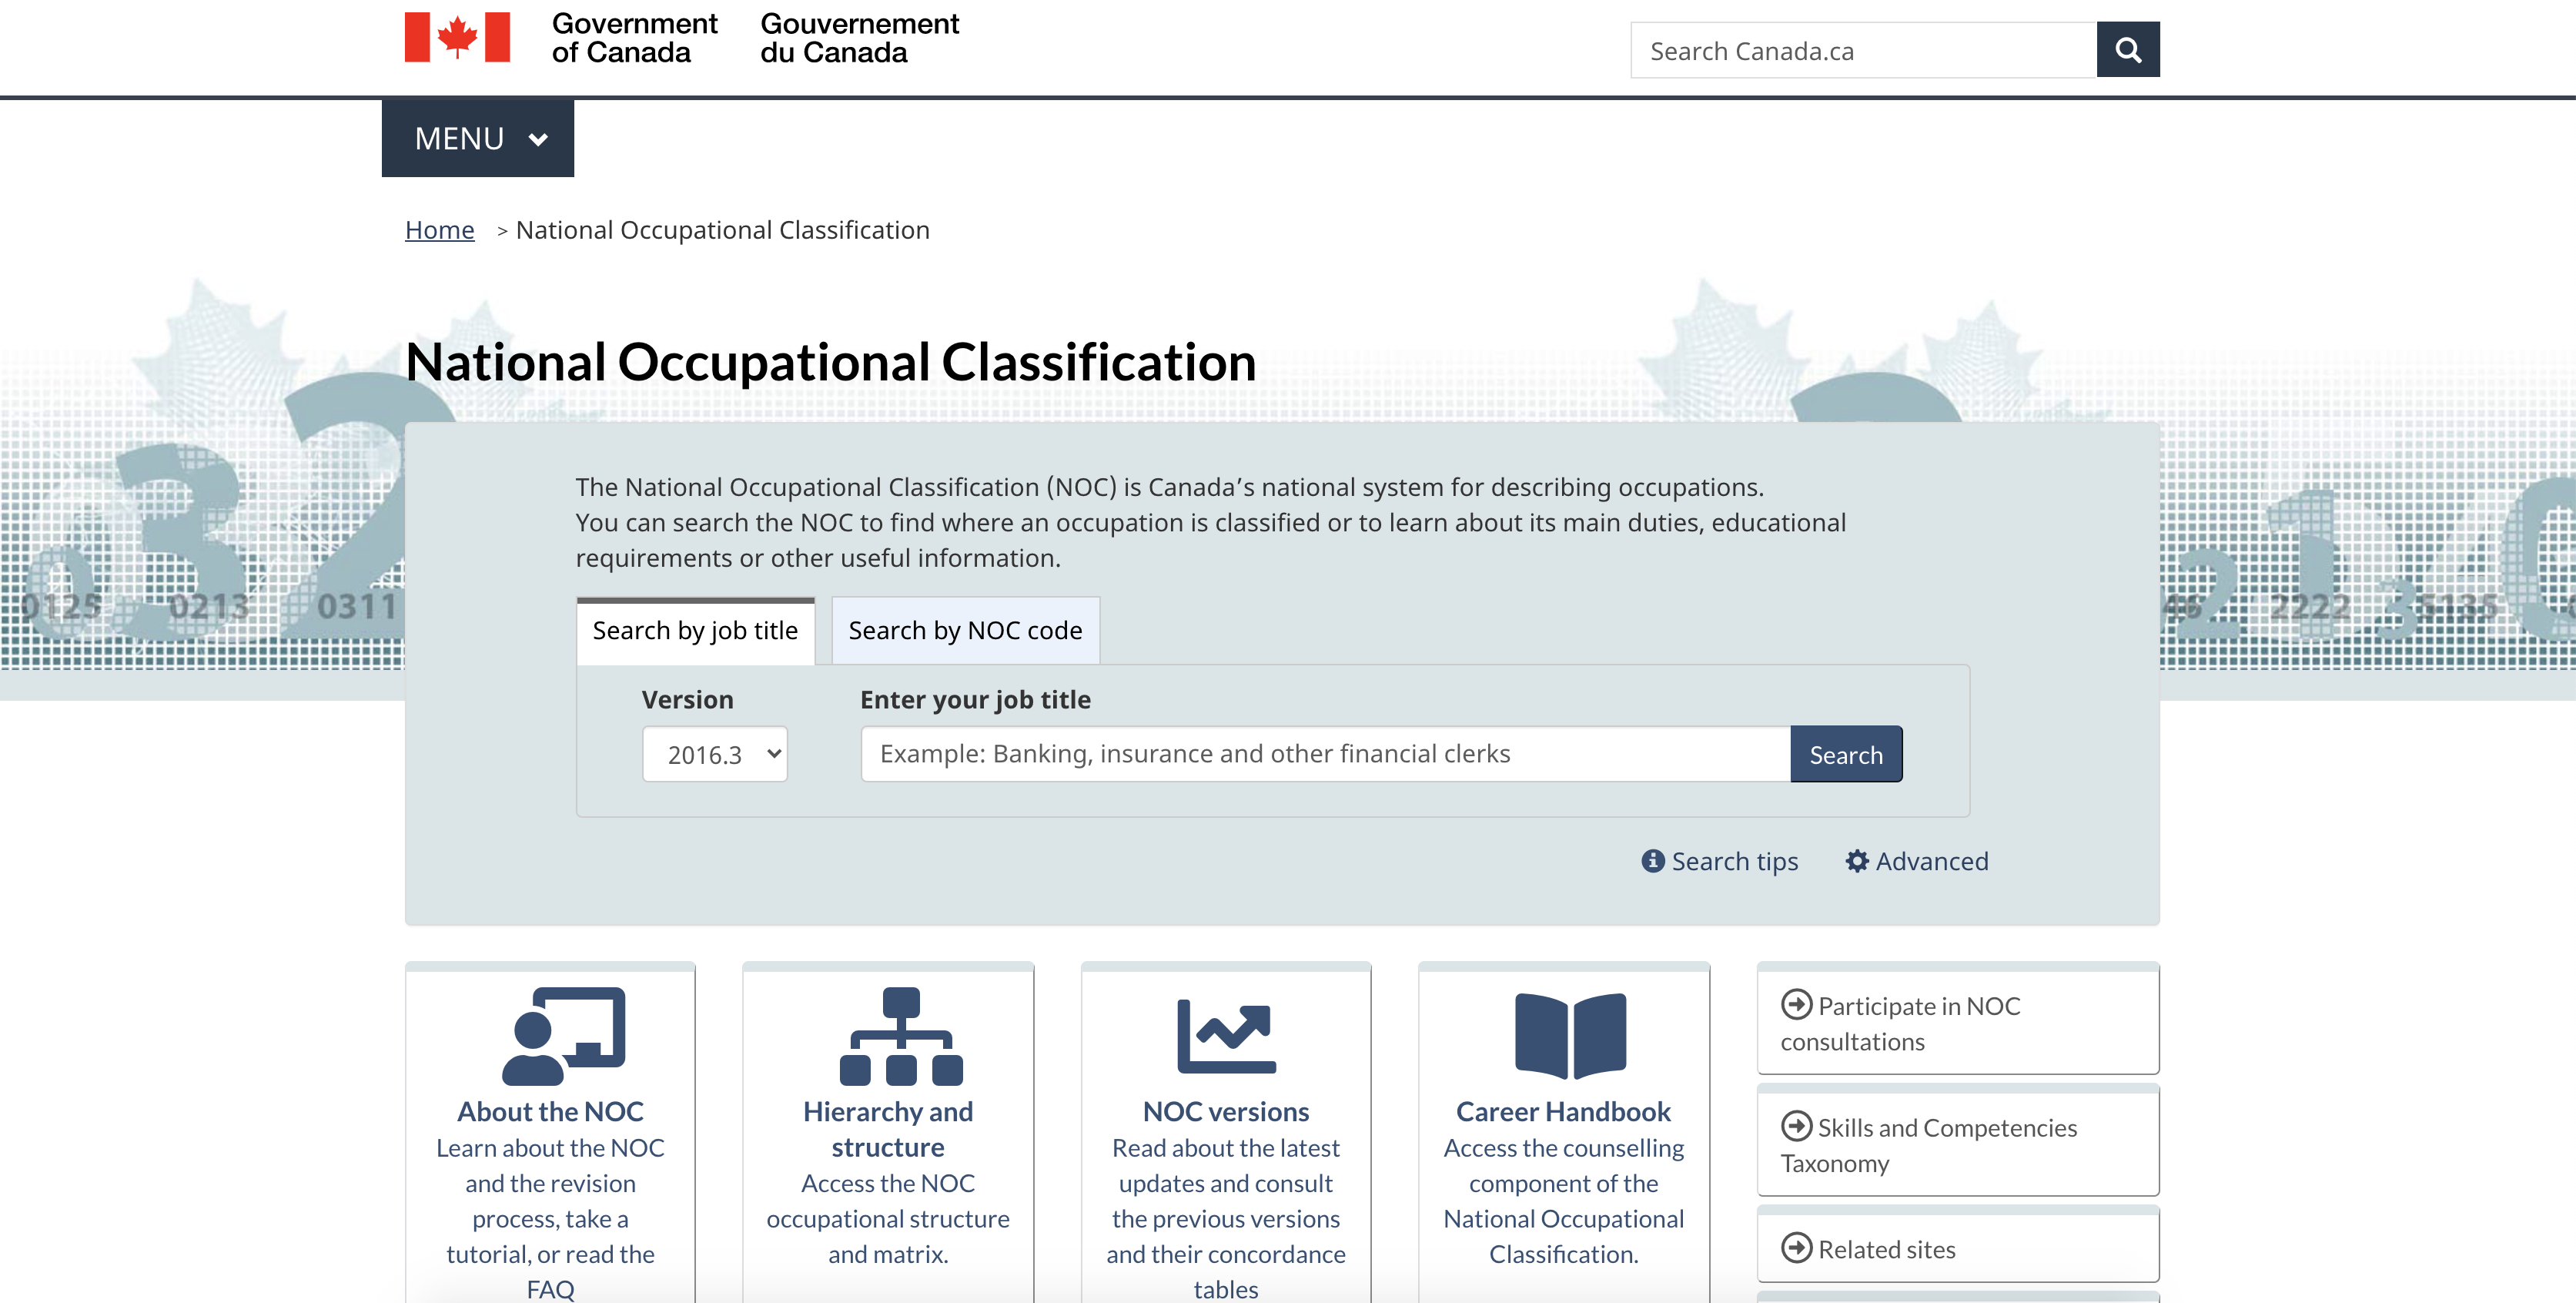 National Occupational Classification (NOC)